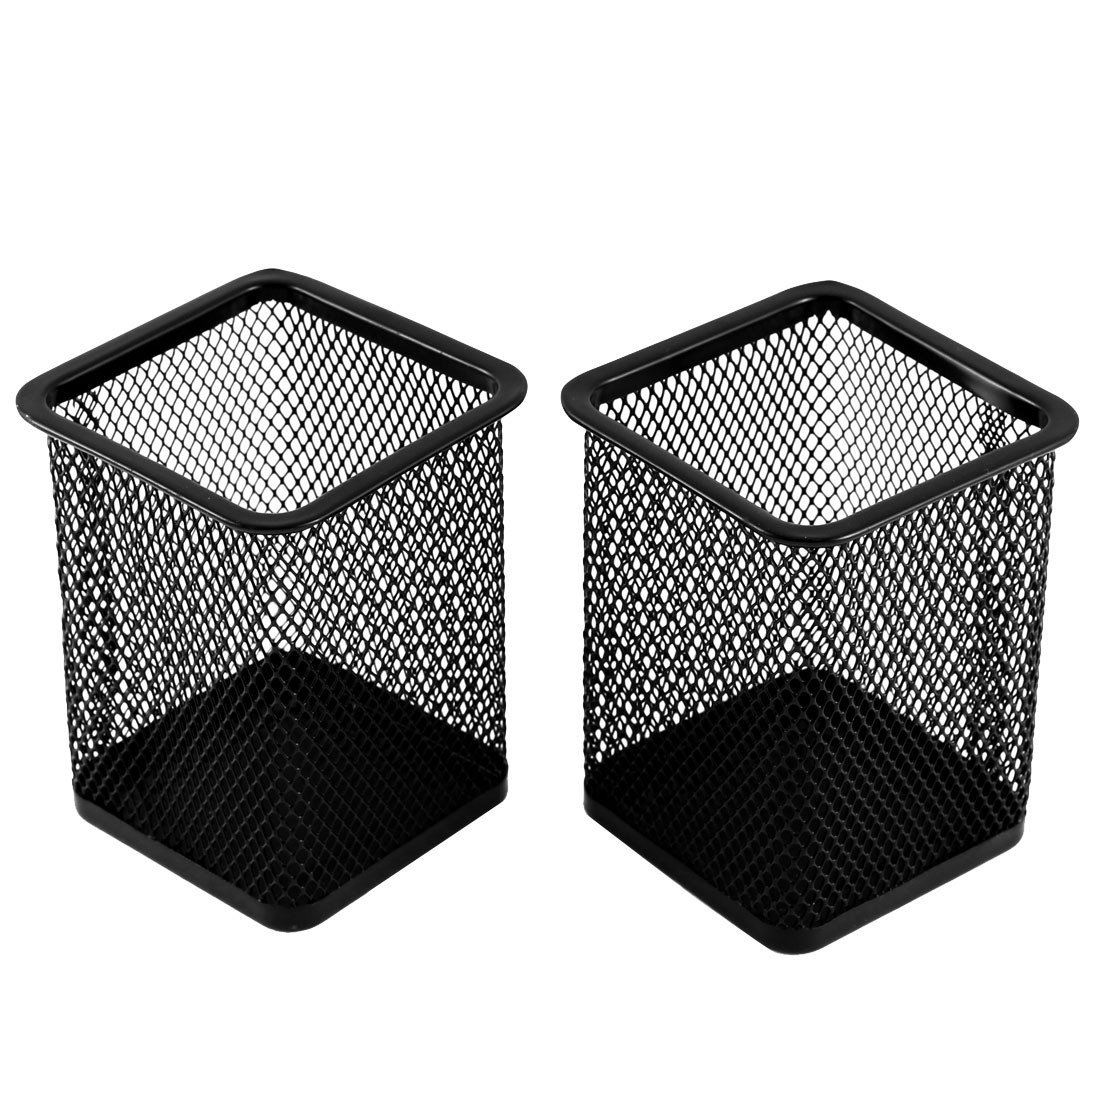 Home Office Square Design Pen Pencil Pot Holder Container Organizer Black 2pcs